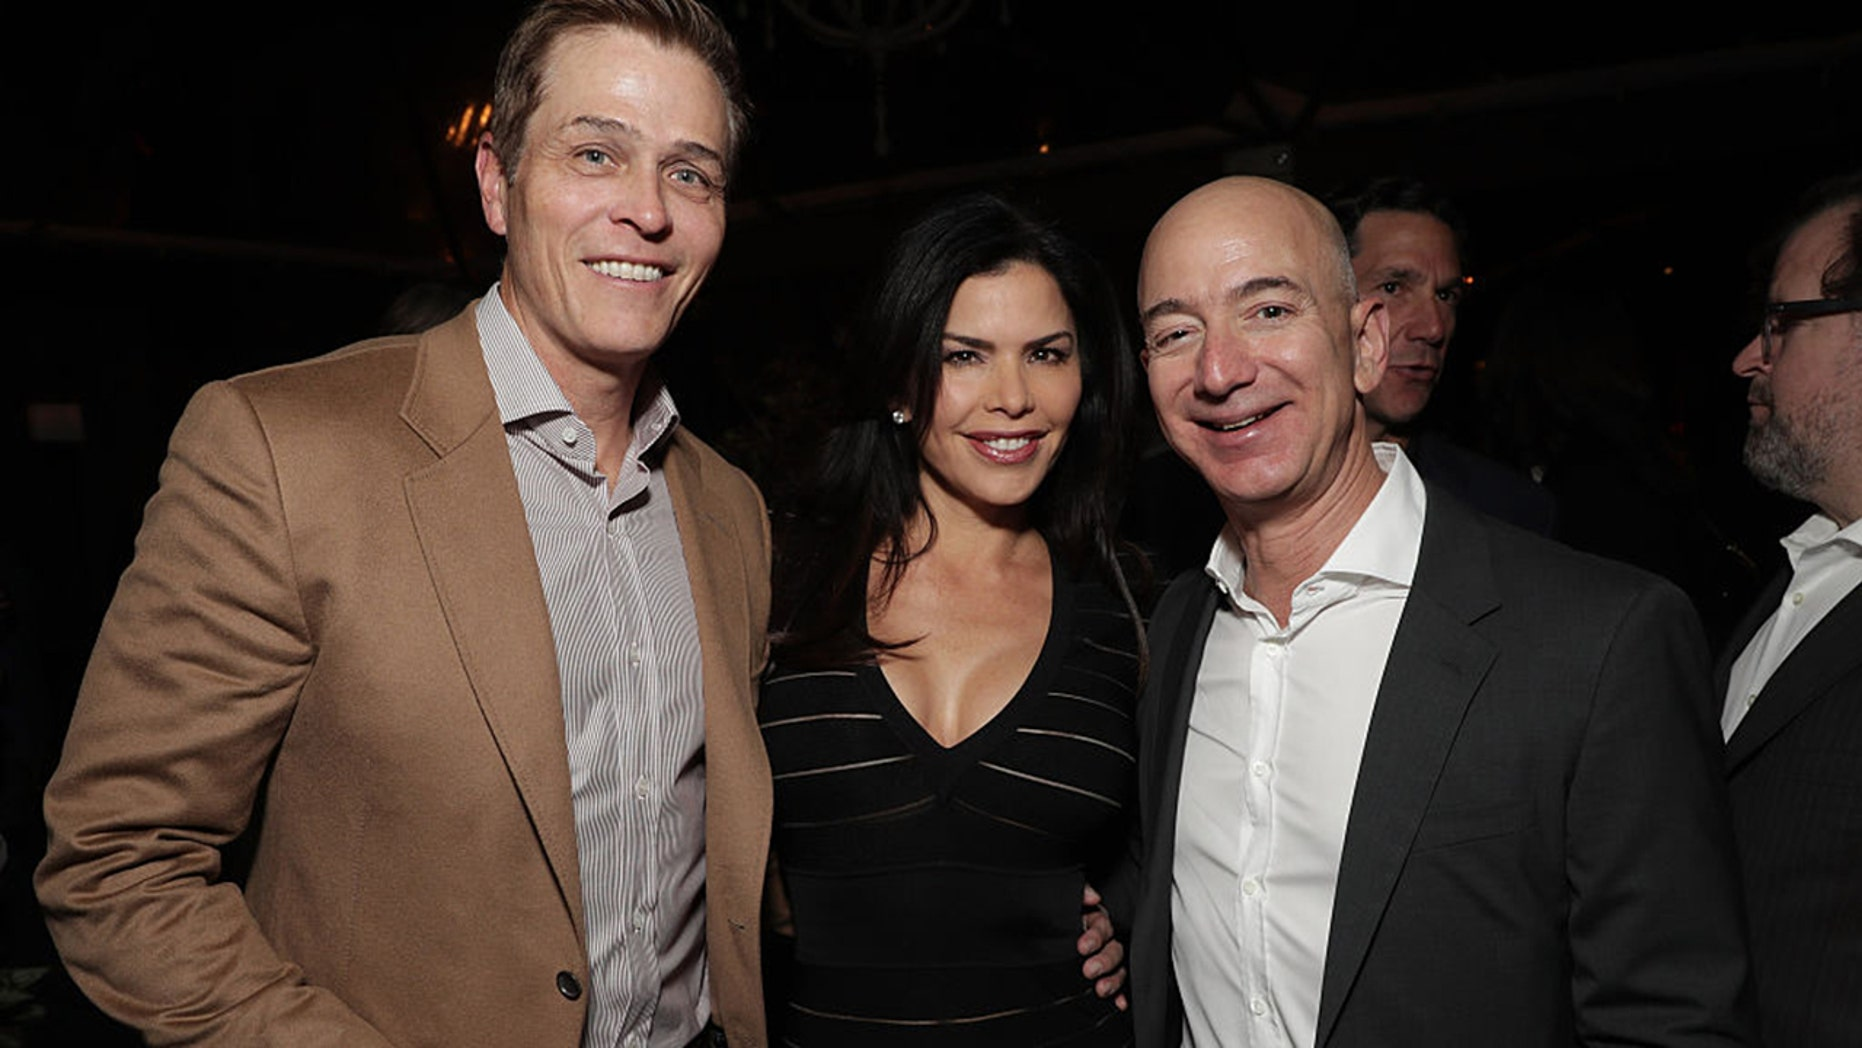 Lauren Sanchez and her reportedly-estranged husband Patrick Whitesell with Amazon CEO Jeff Bezos in 2016